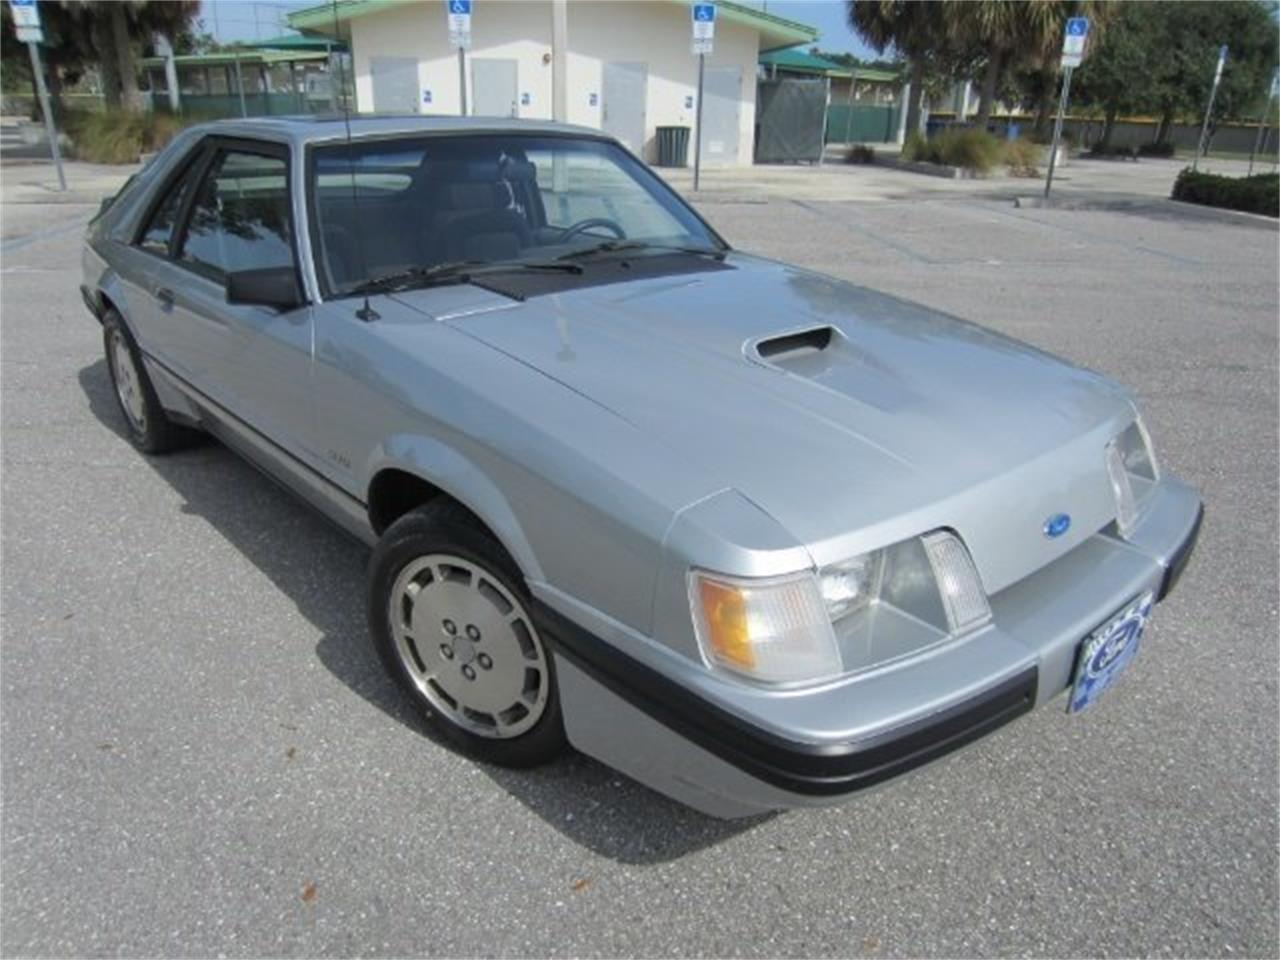 Large picture of 84 mustang oyak